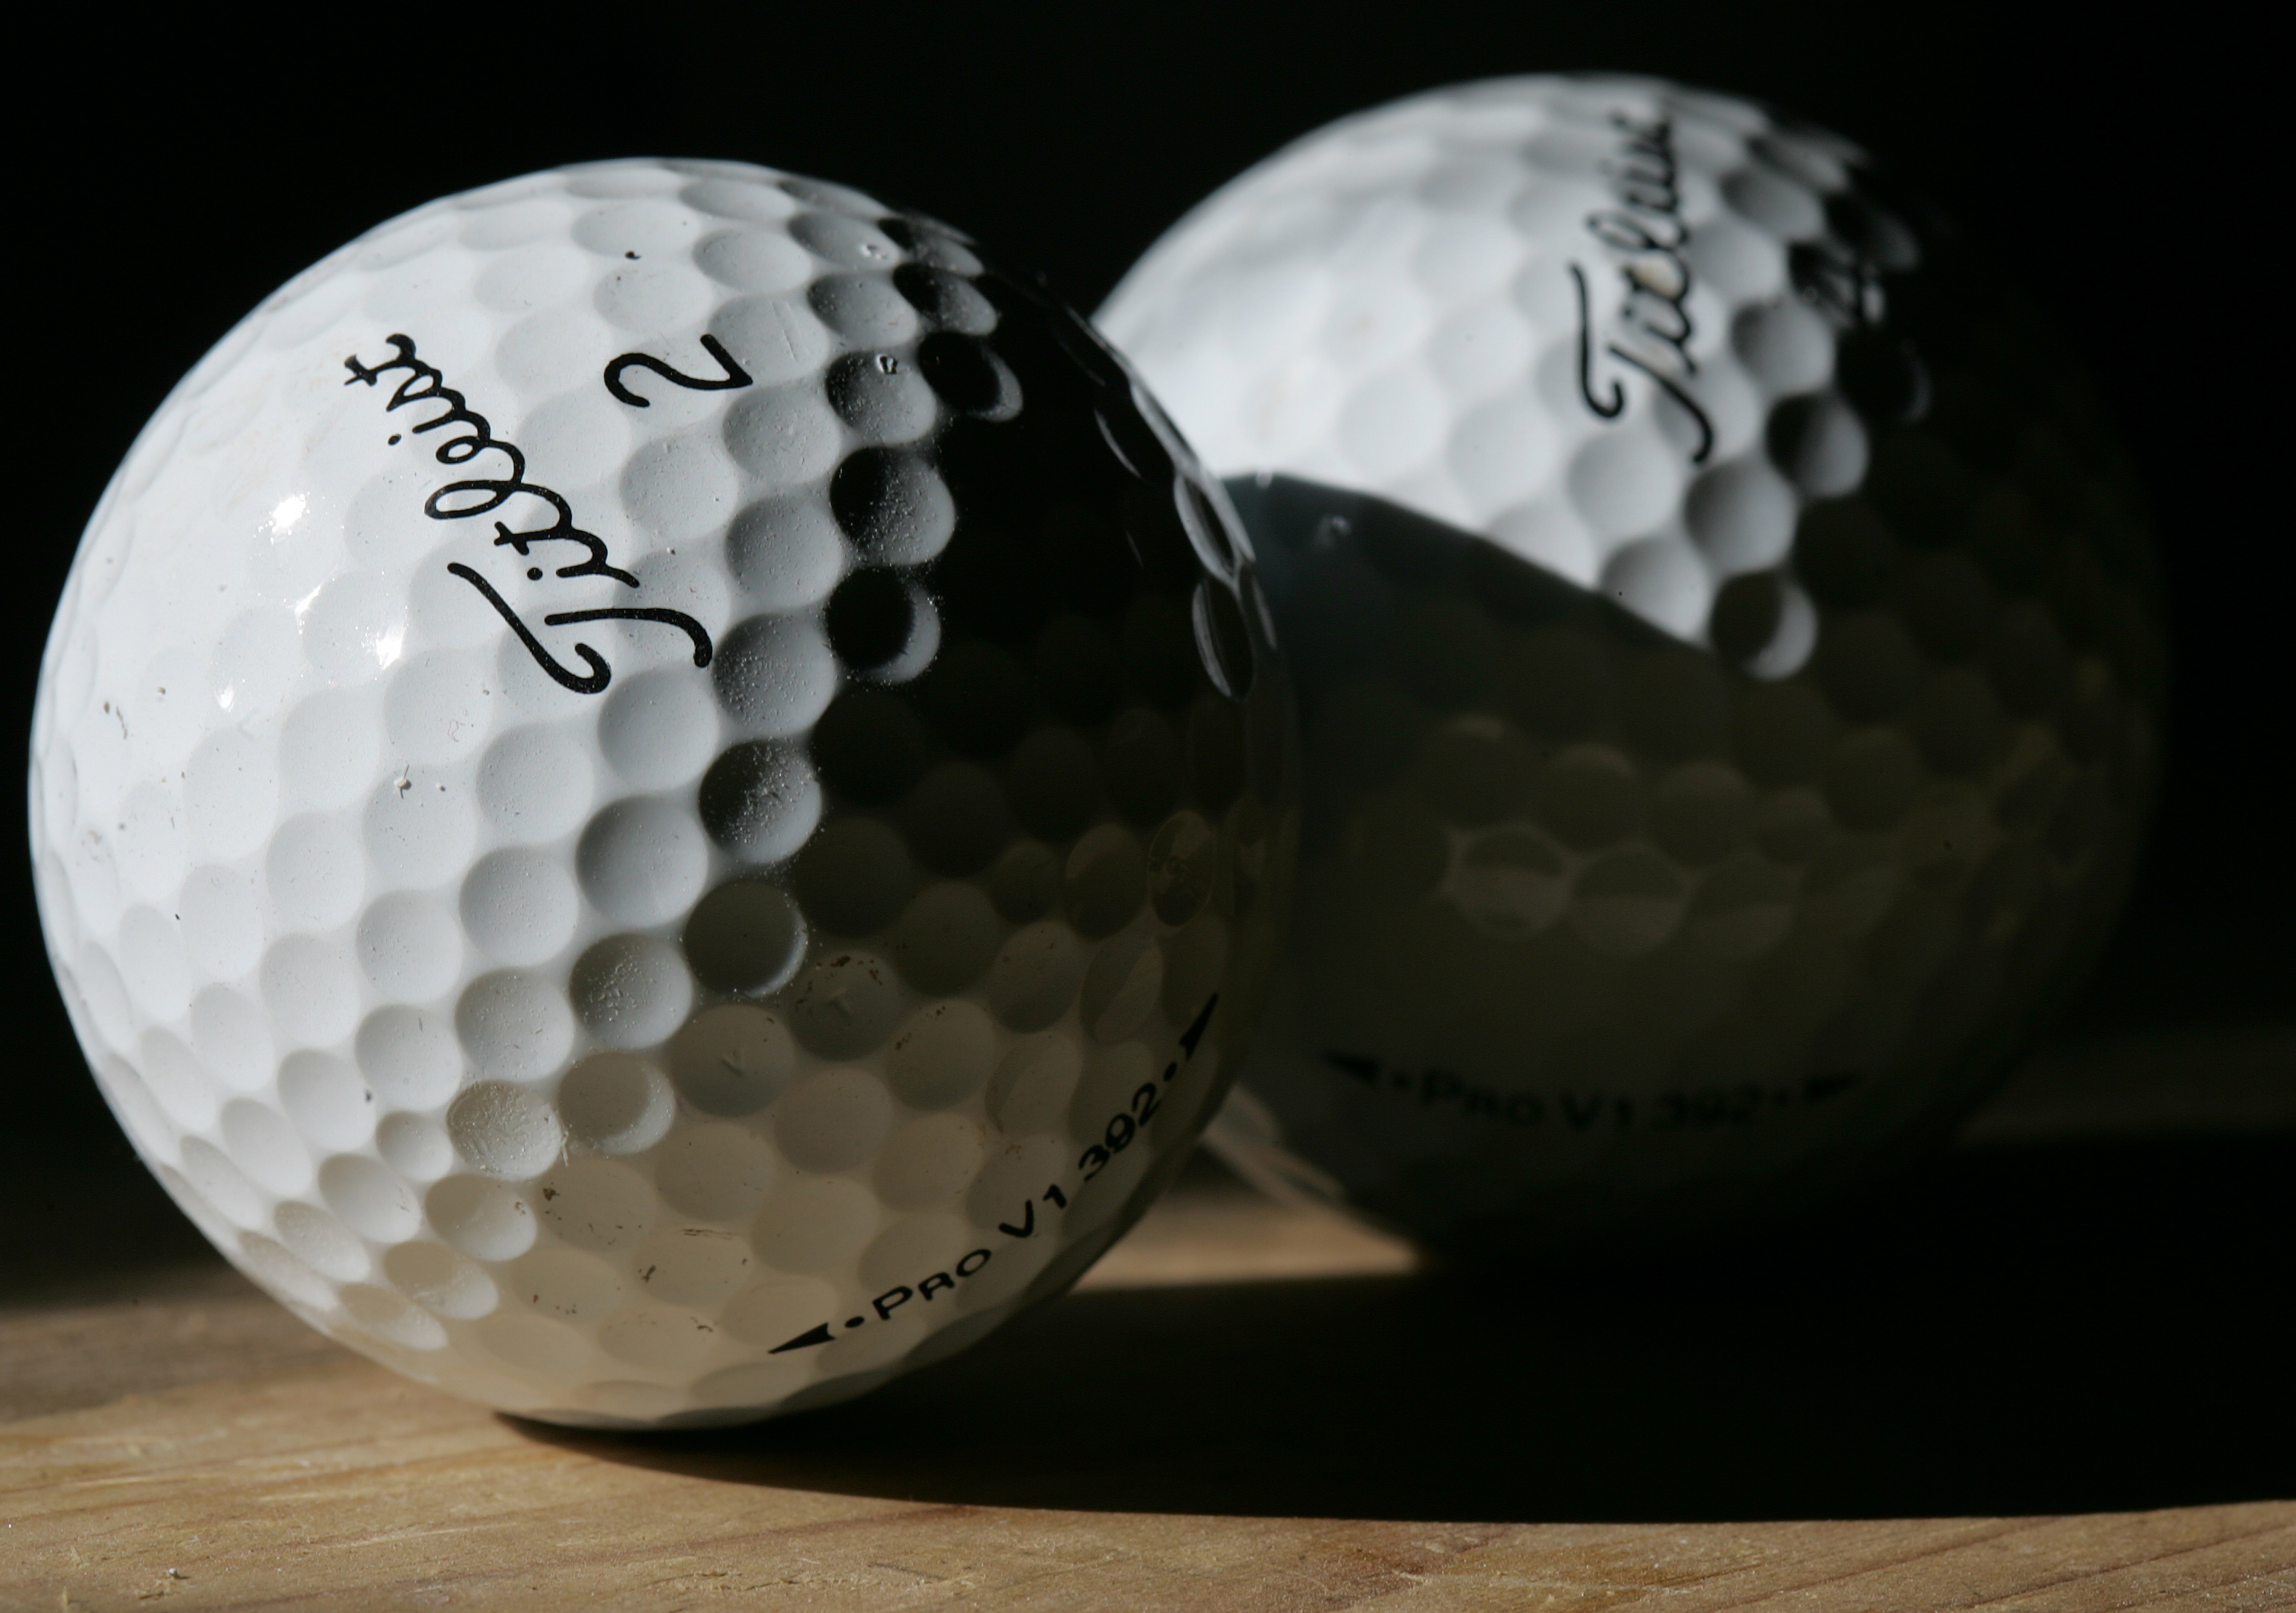 GOLF BALLS . 04.17.2006.Titleist Pro V1 golf balls for any use. This is just a filer use if you want